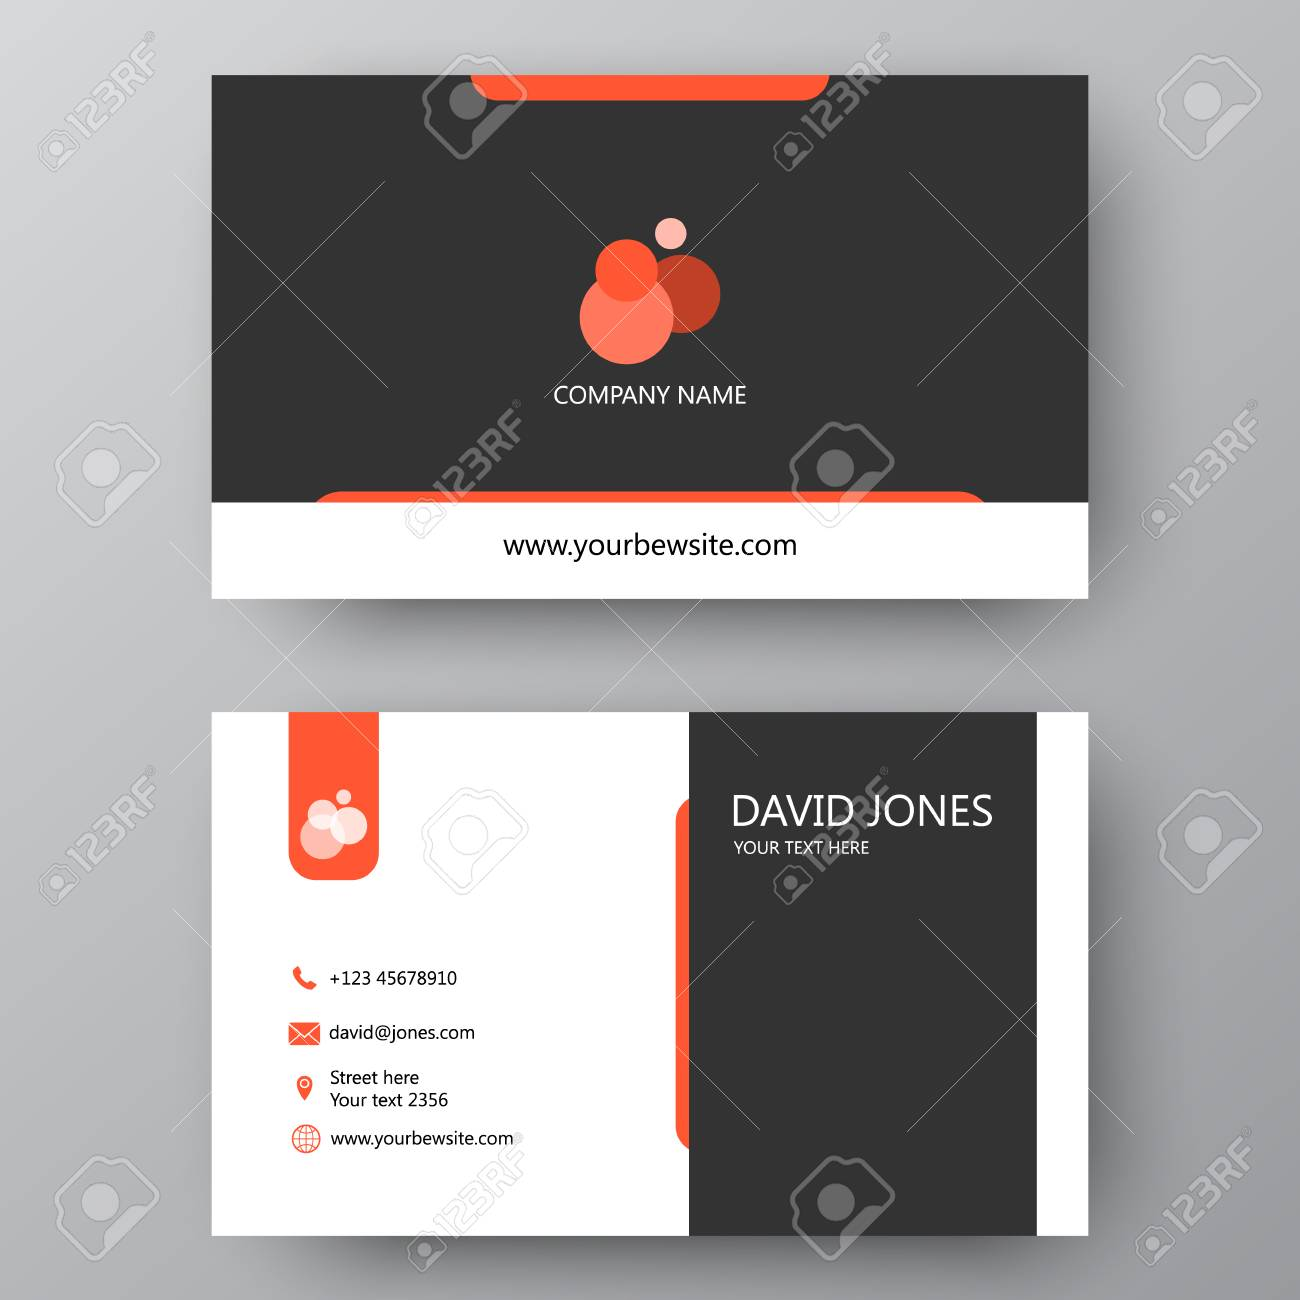 Vector business card template visiting card for business and vector vector business card template visiting card for business and personal use modern presentation card with company logo vector illustration design accmission Choice Image